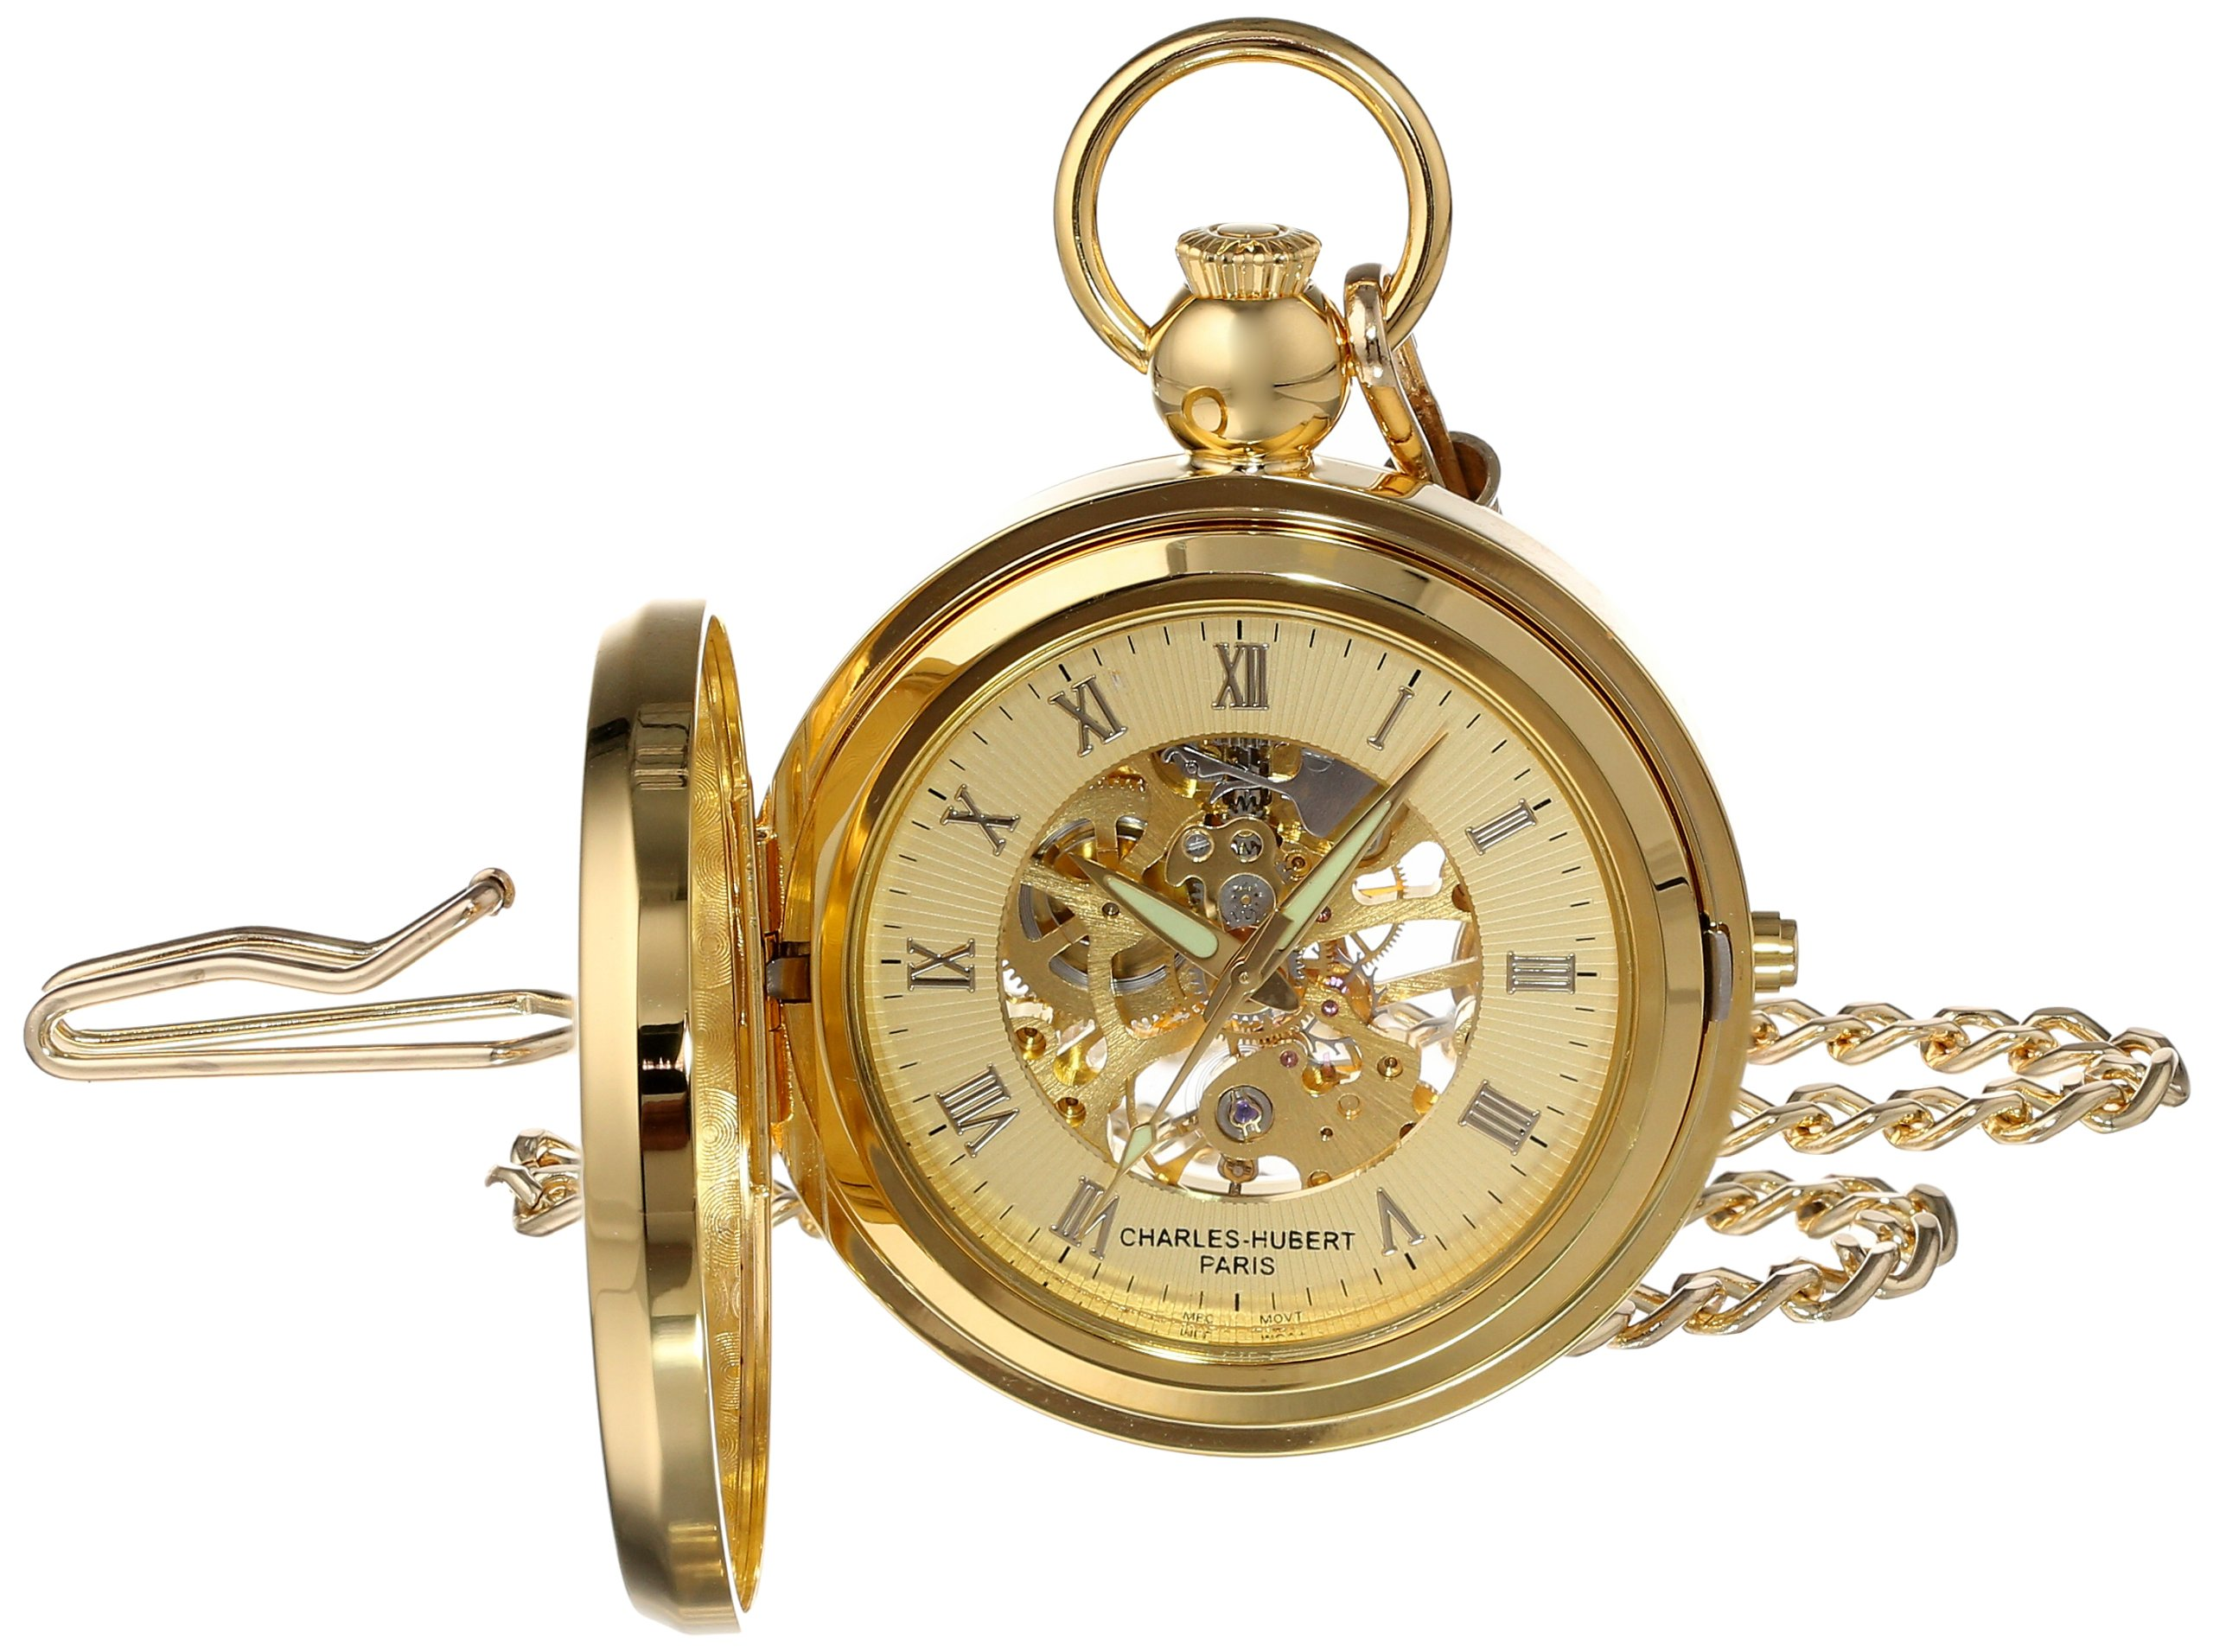 Charles Hubert 3848 Gold-Plated Mechanical Picture Frame Pocket Watch